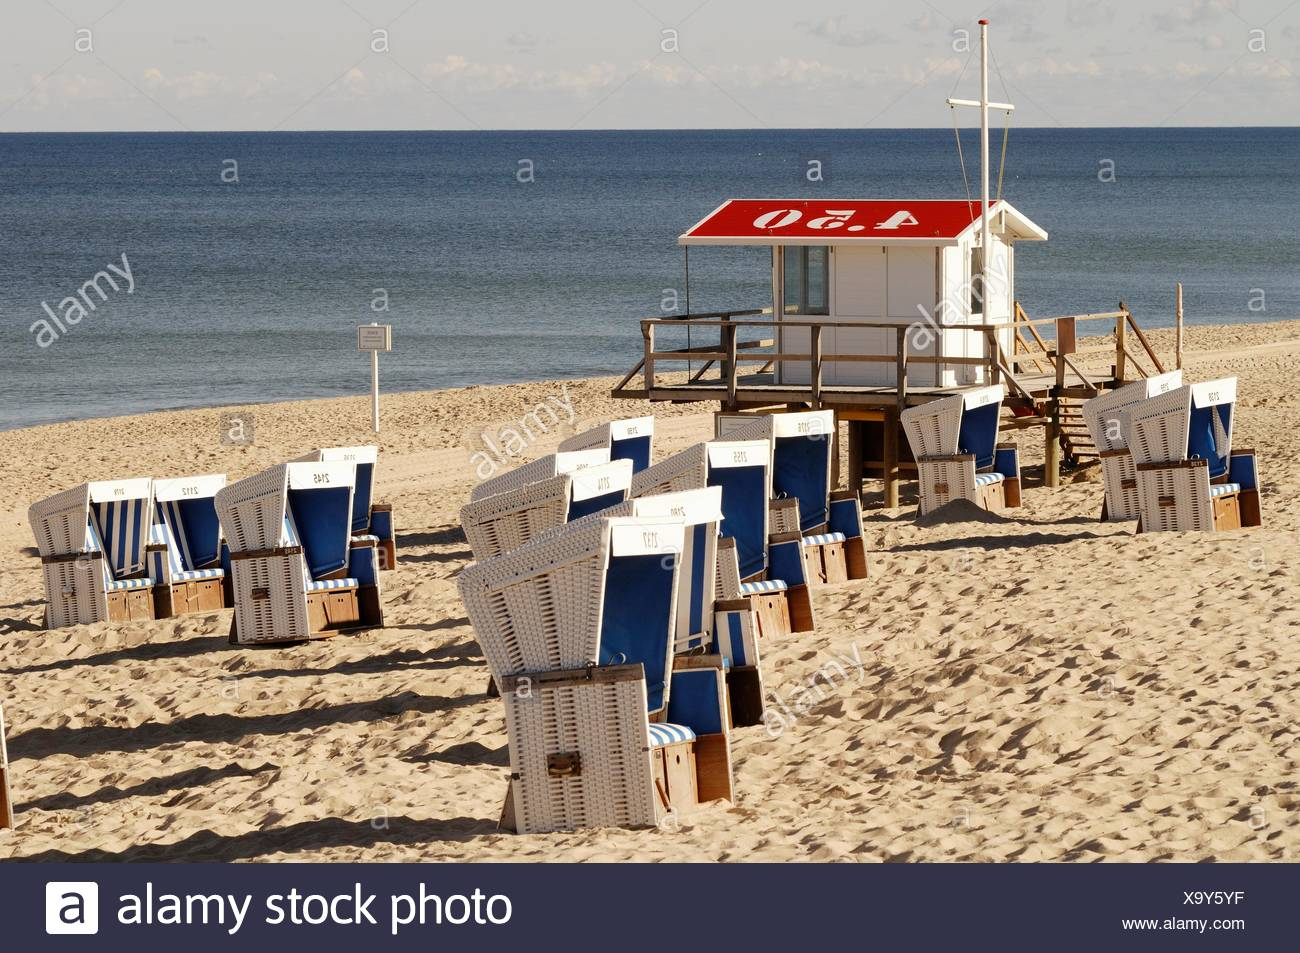 lifeguard house westerland sylt germany stock photos lifeguard house westerland sylt germany. Black Bedroom Furniture Sets. Home Design Ideas